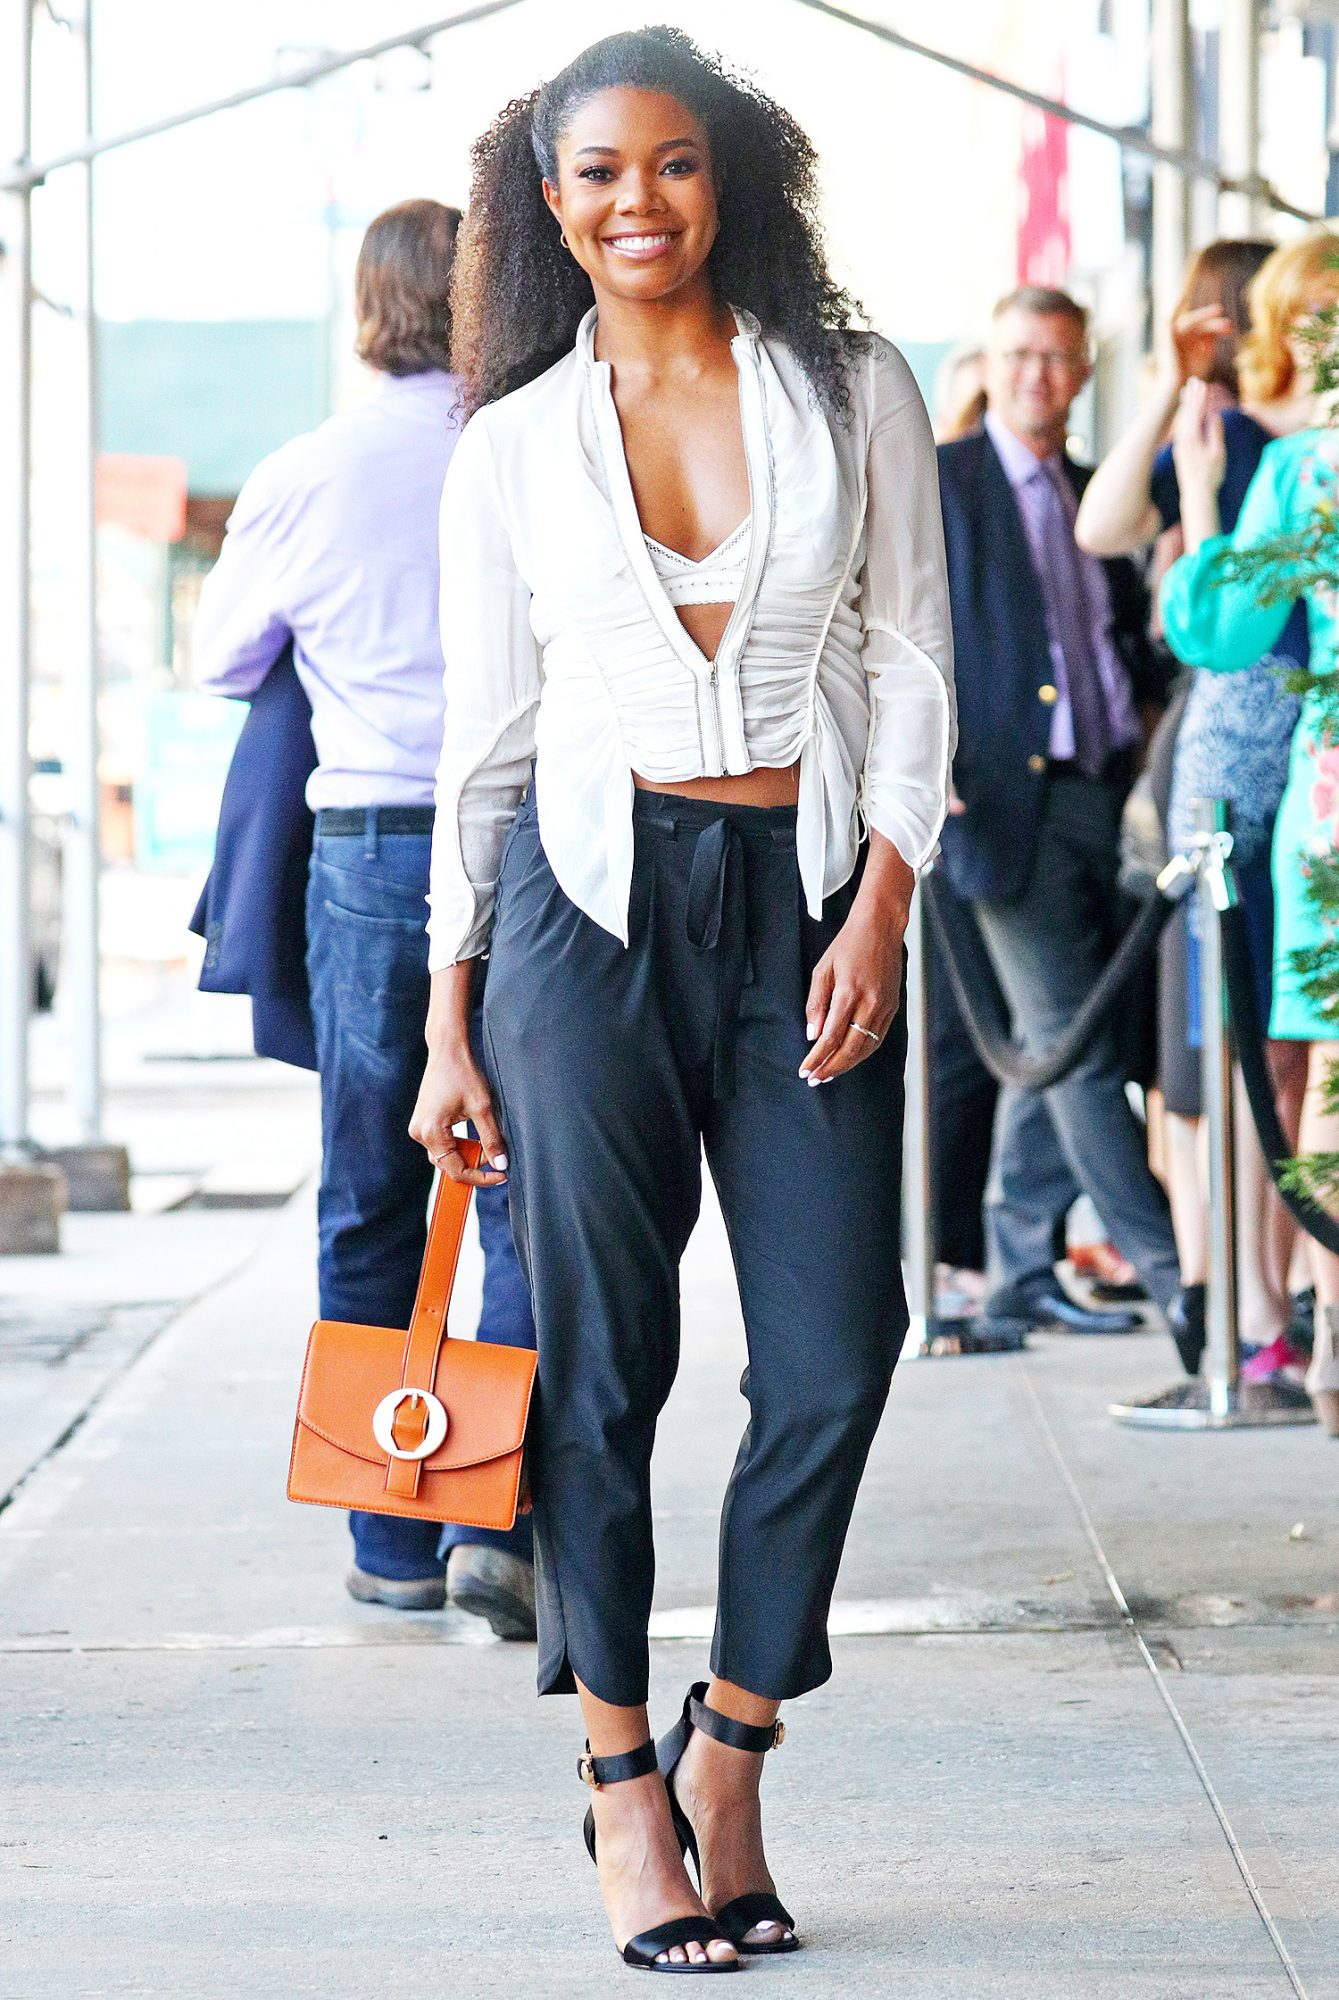 EXCLUSIVE: Actress Gabrielle Union steps out wearing a gathered white top and black pants in New York City, New York